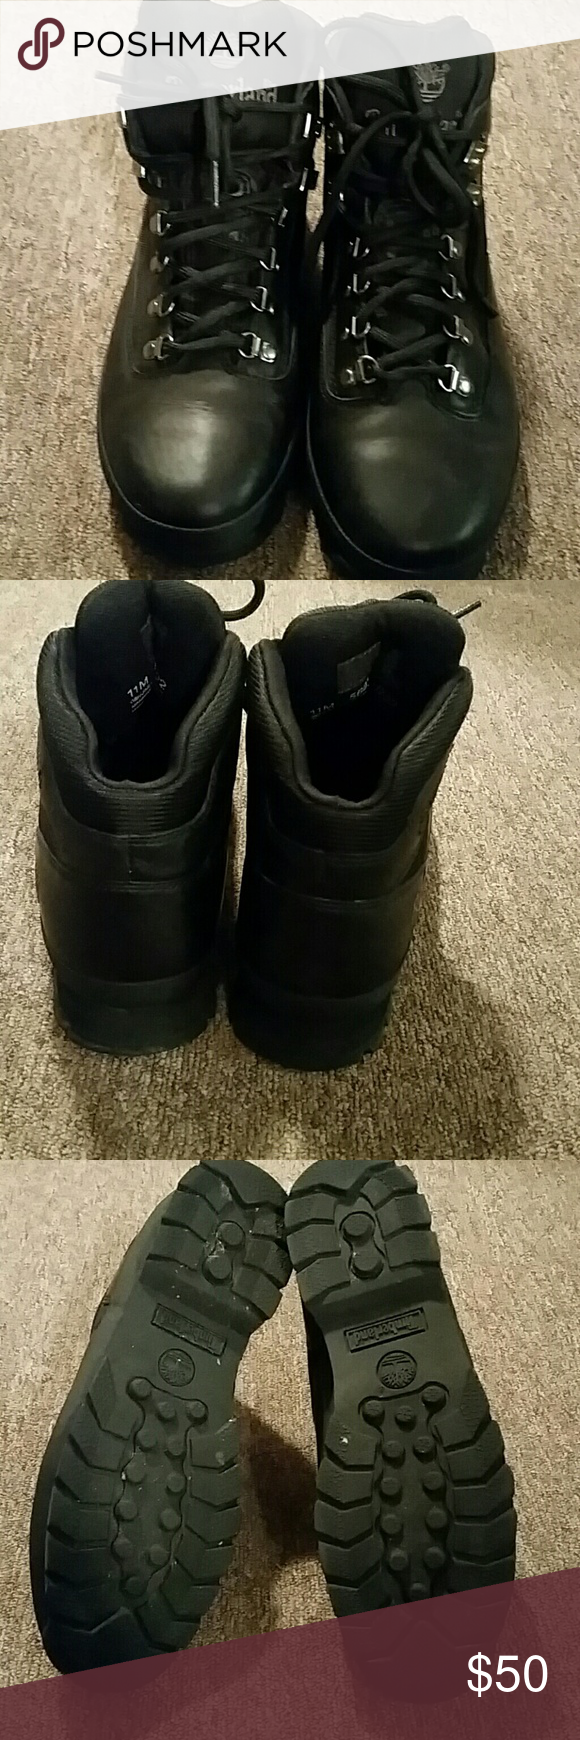 Men's black Timberland boots